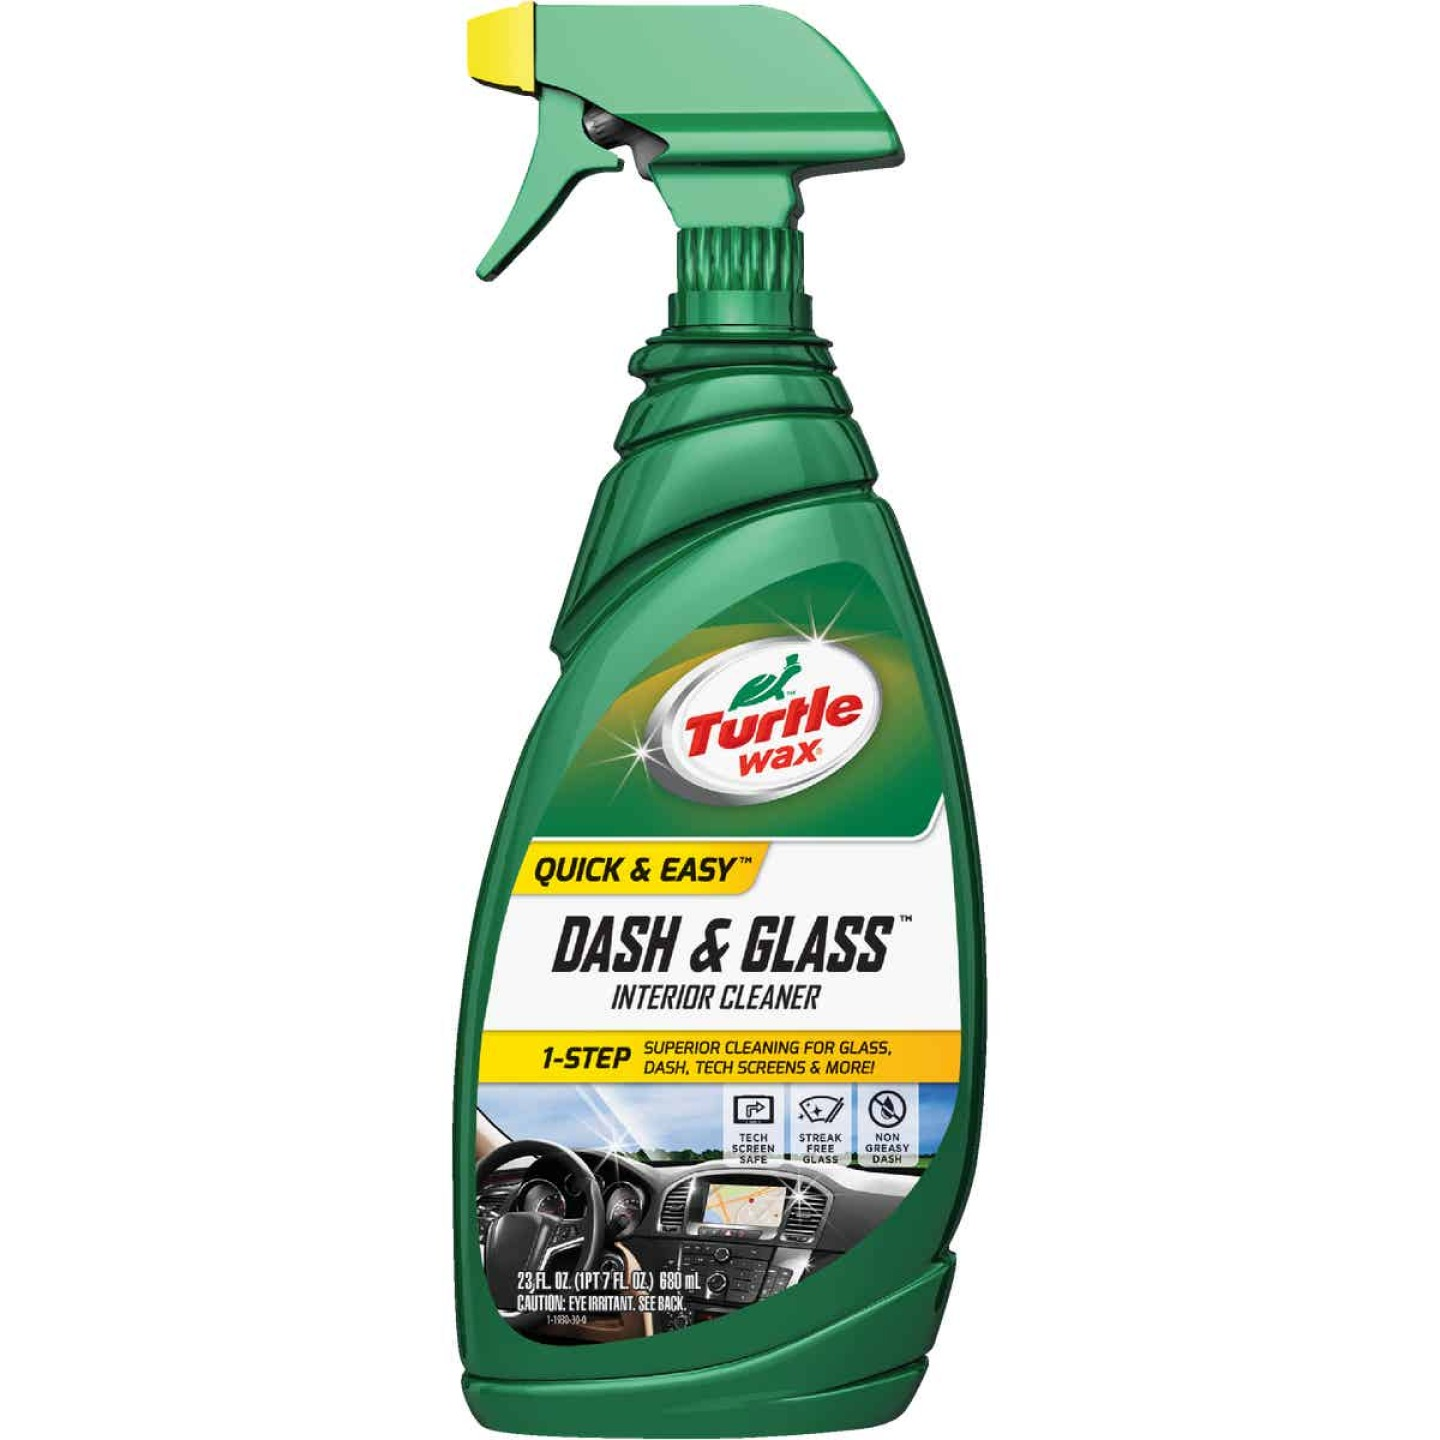 Turtle Wax Dash & Glass 23 Oz. Trigger Spray Auto Interior Cleaner Image 1